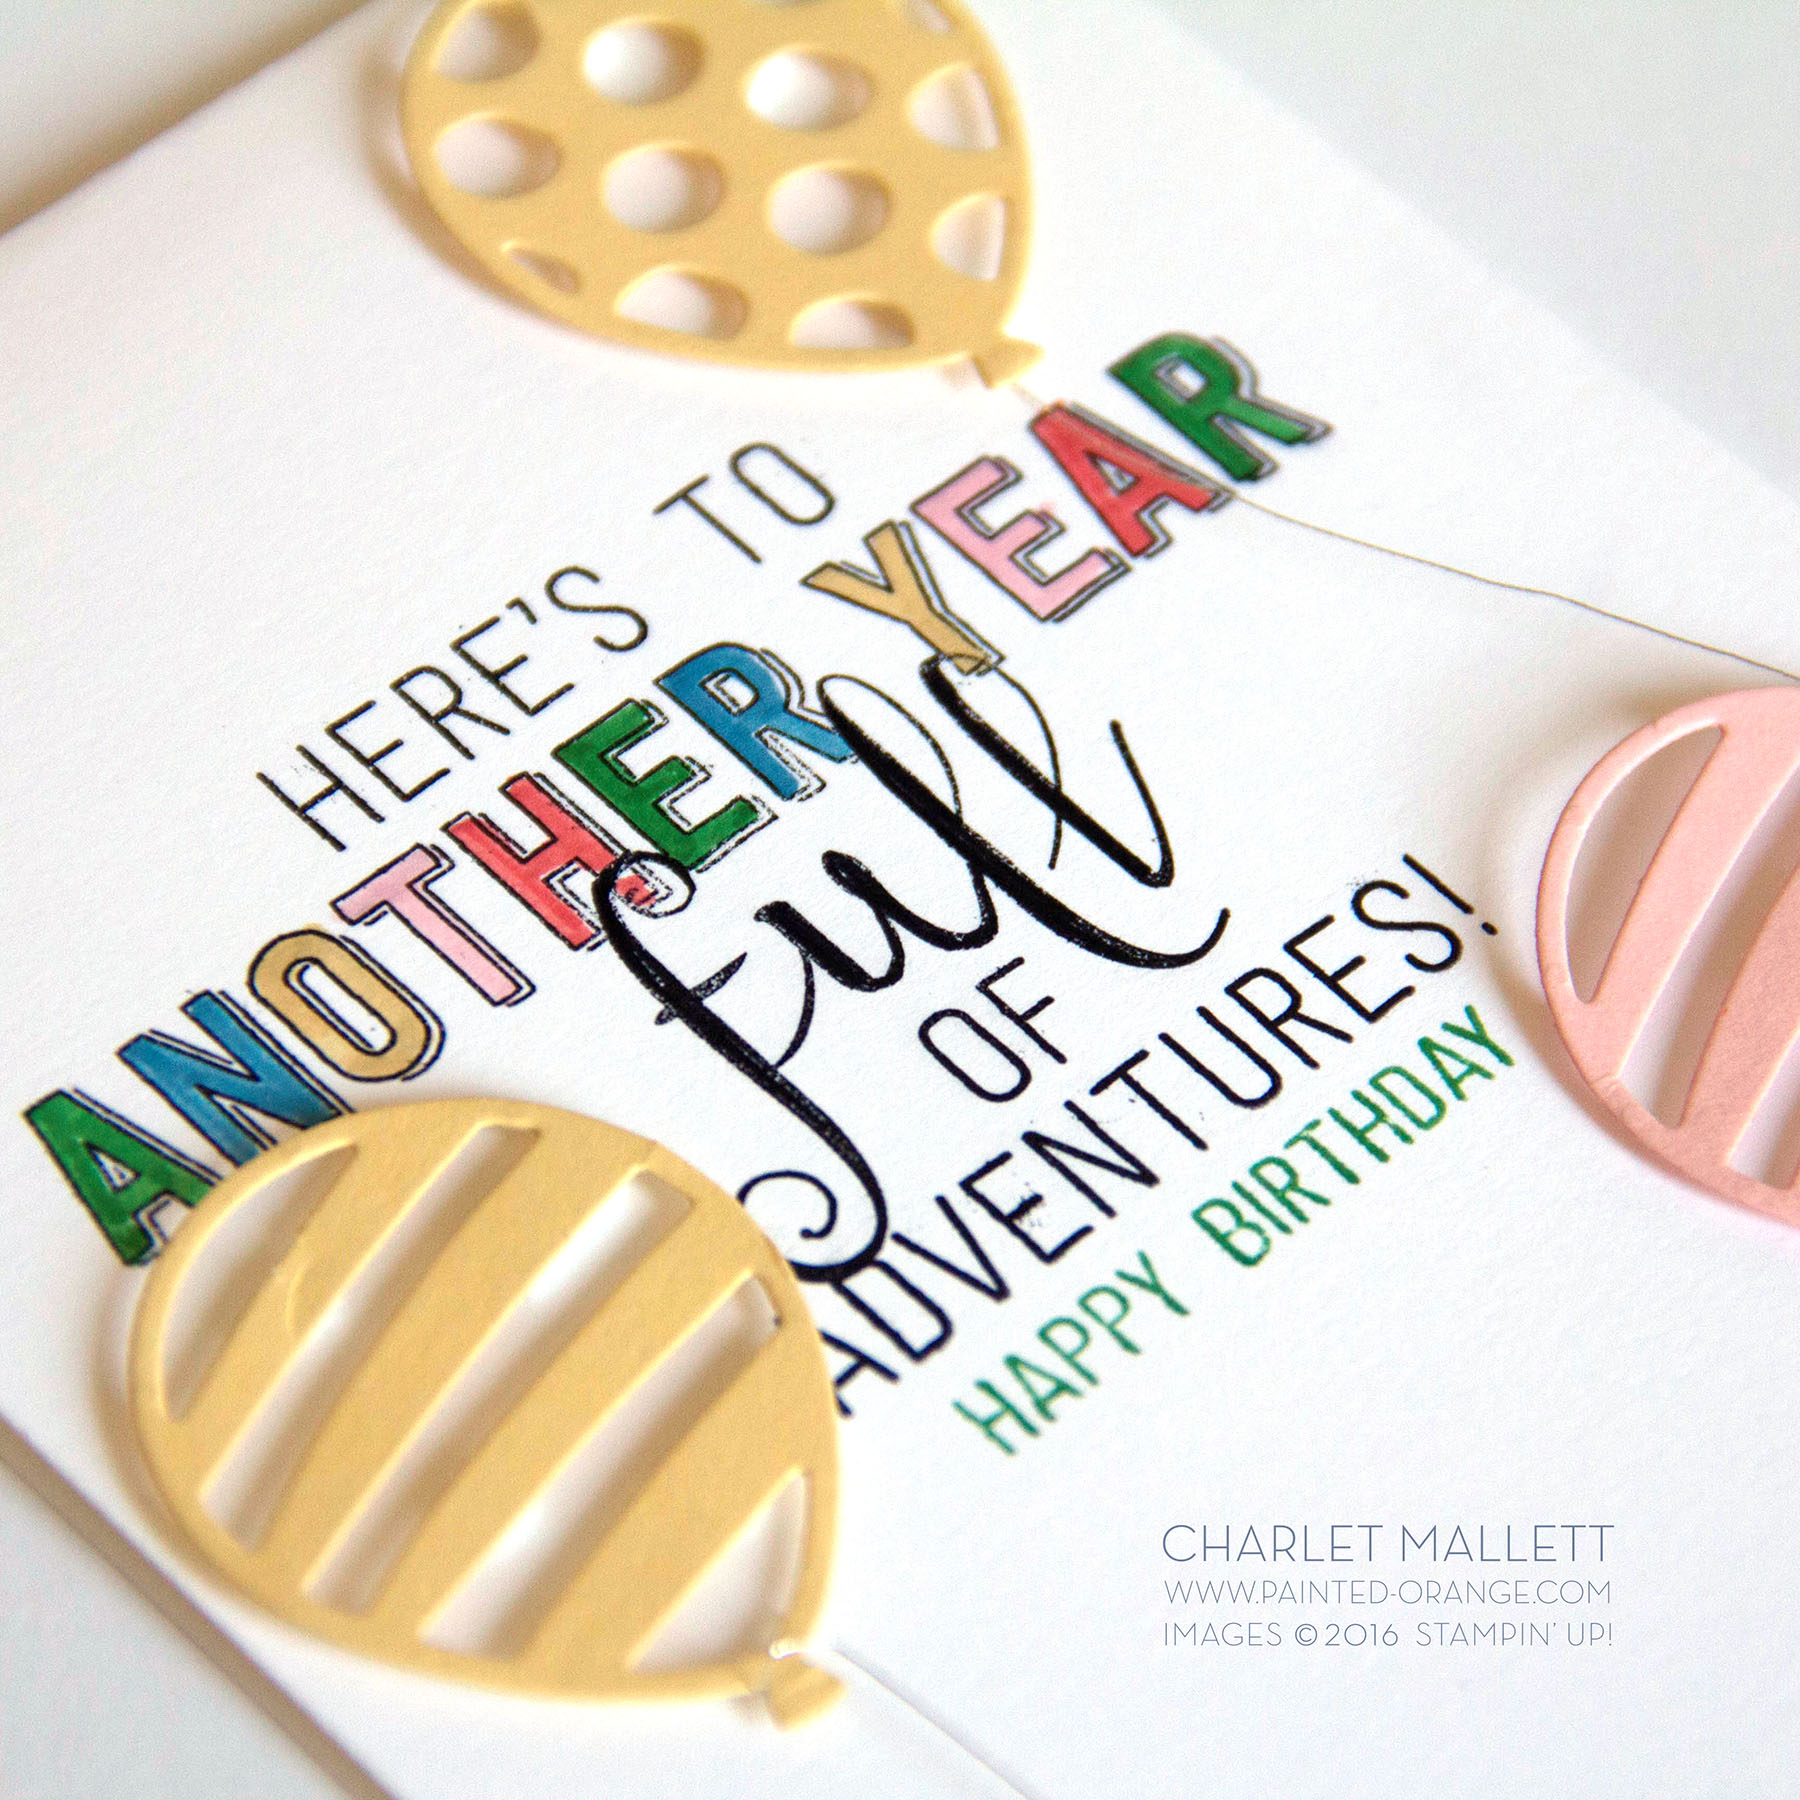 Balloon Adventures - Stampin' Up! 2017 Occasions mini catalog - Charlet Mallett